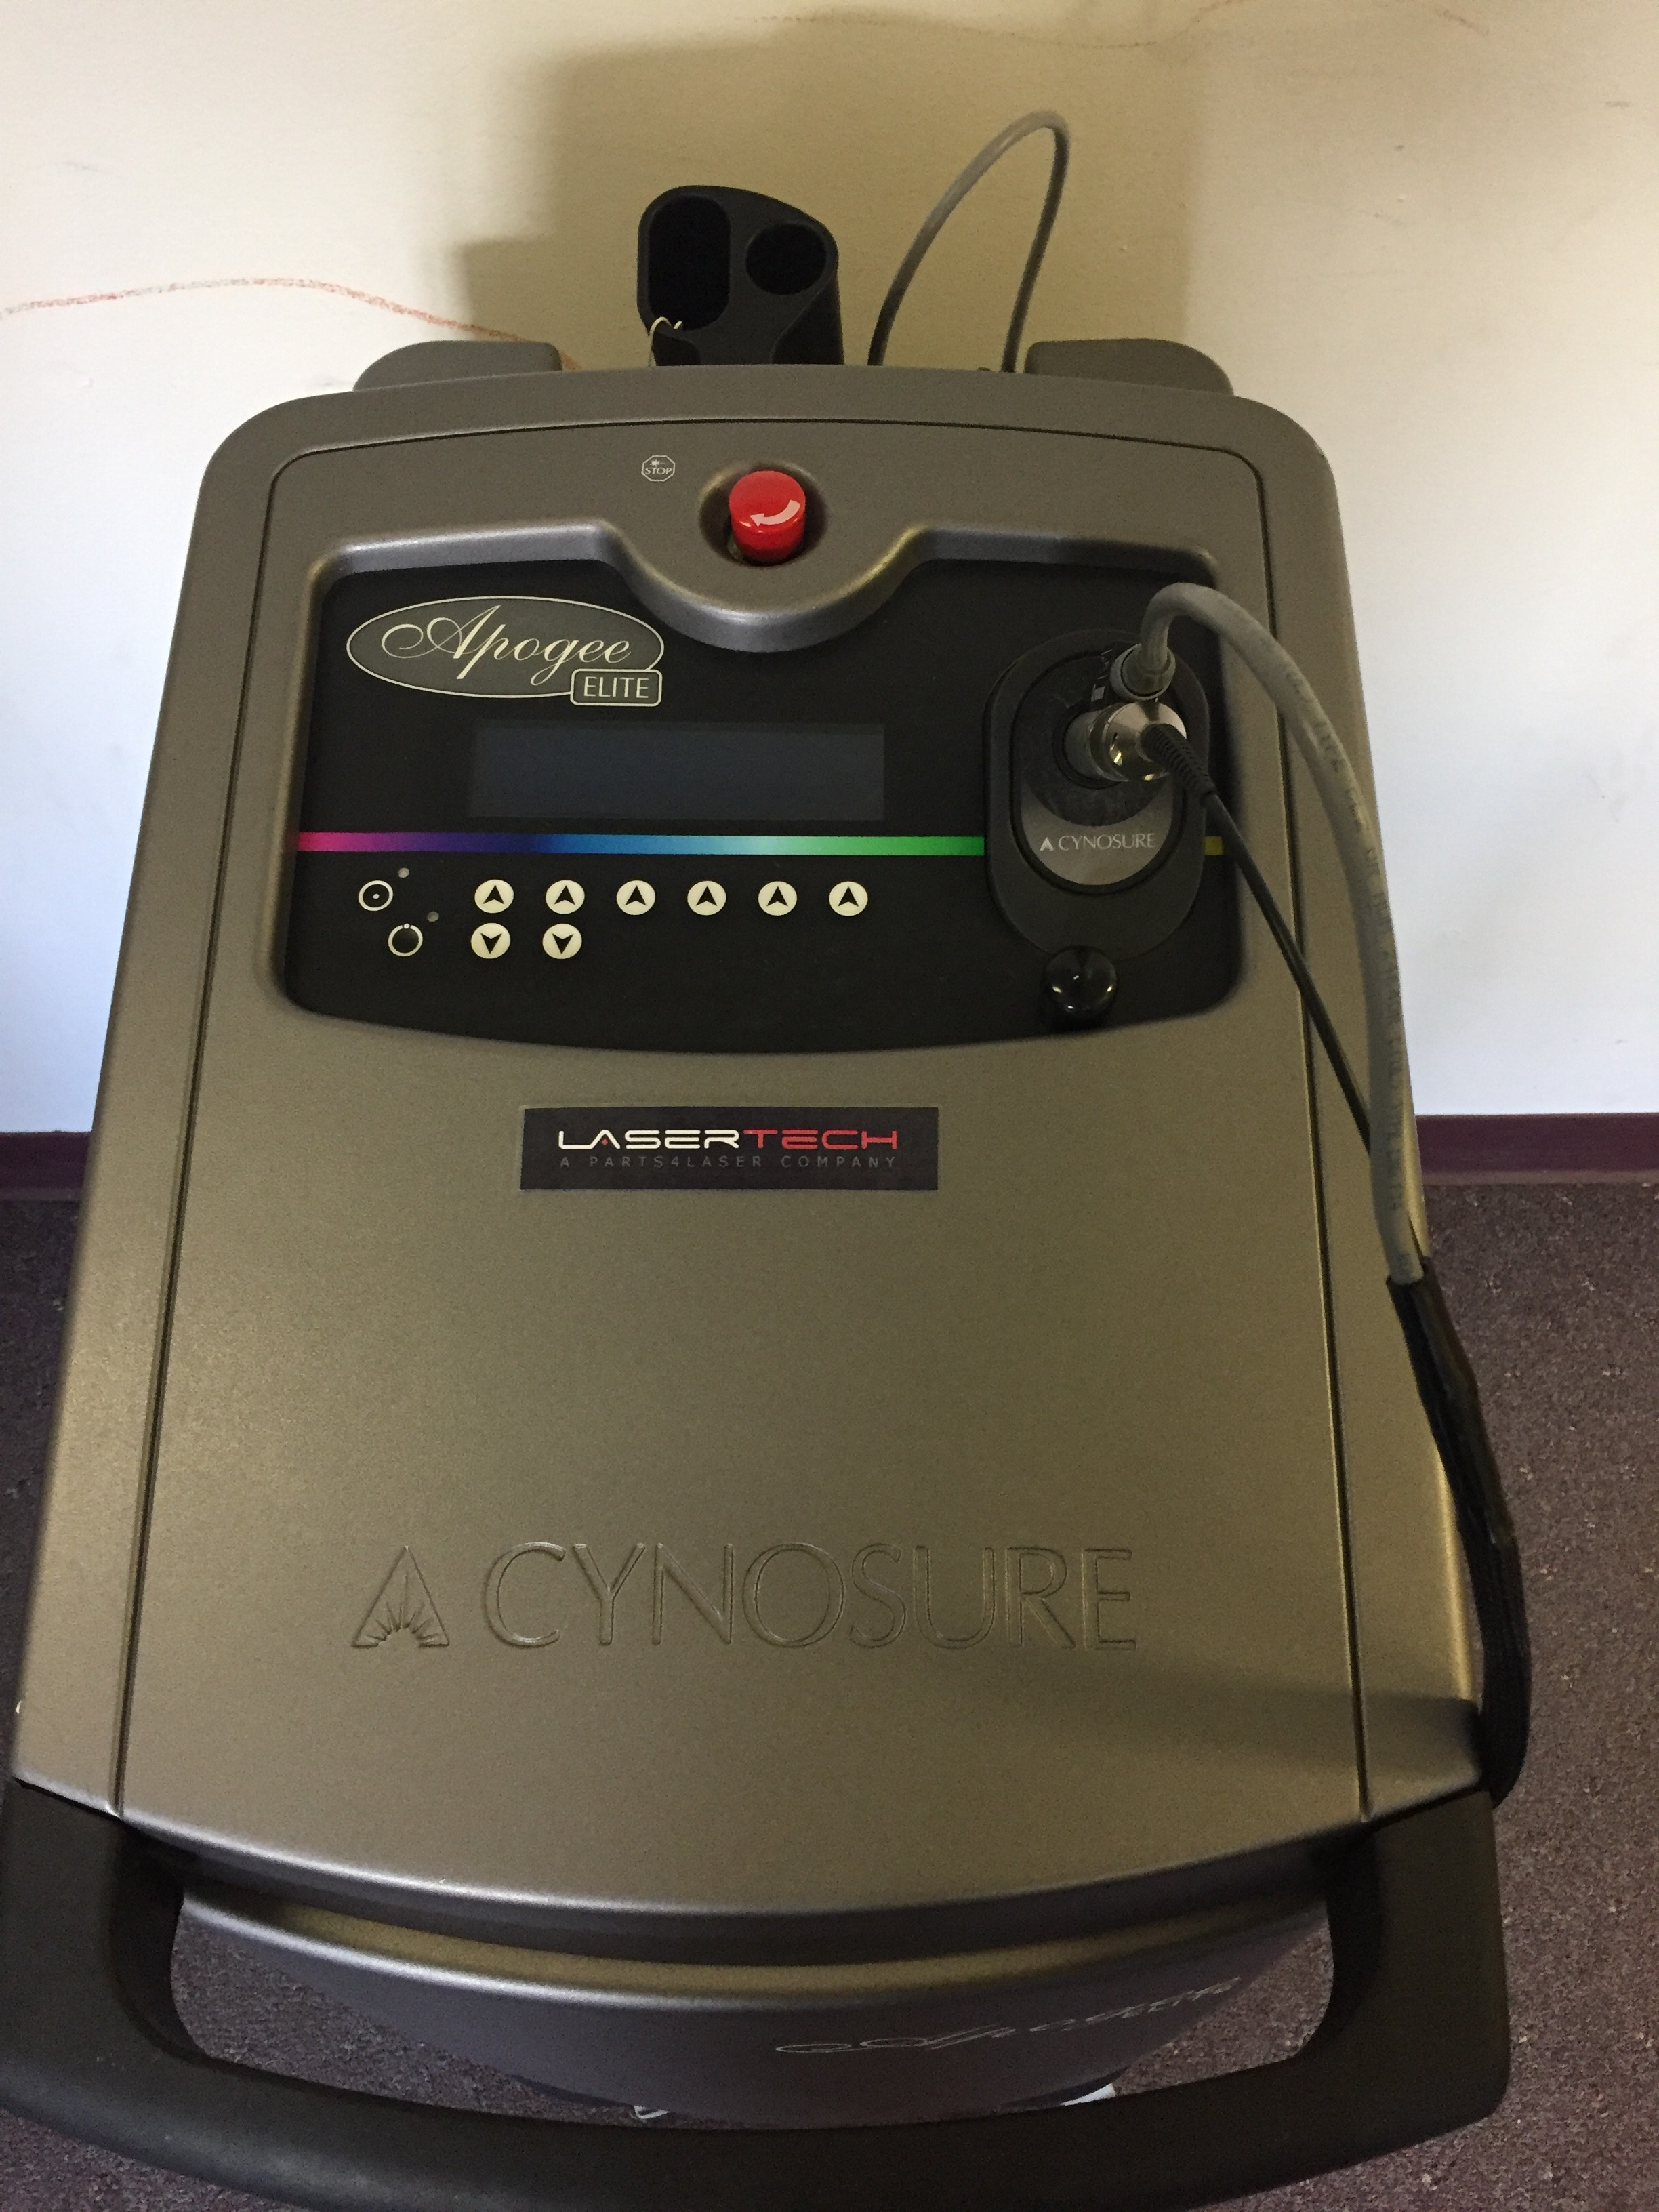 Cynosure Apogee Elite Laser Machine Sale Laser Tech